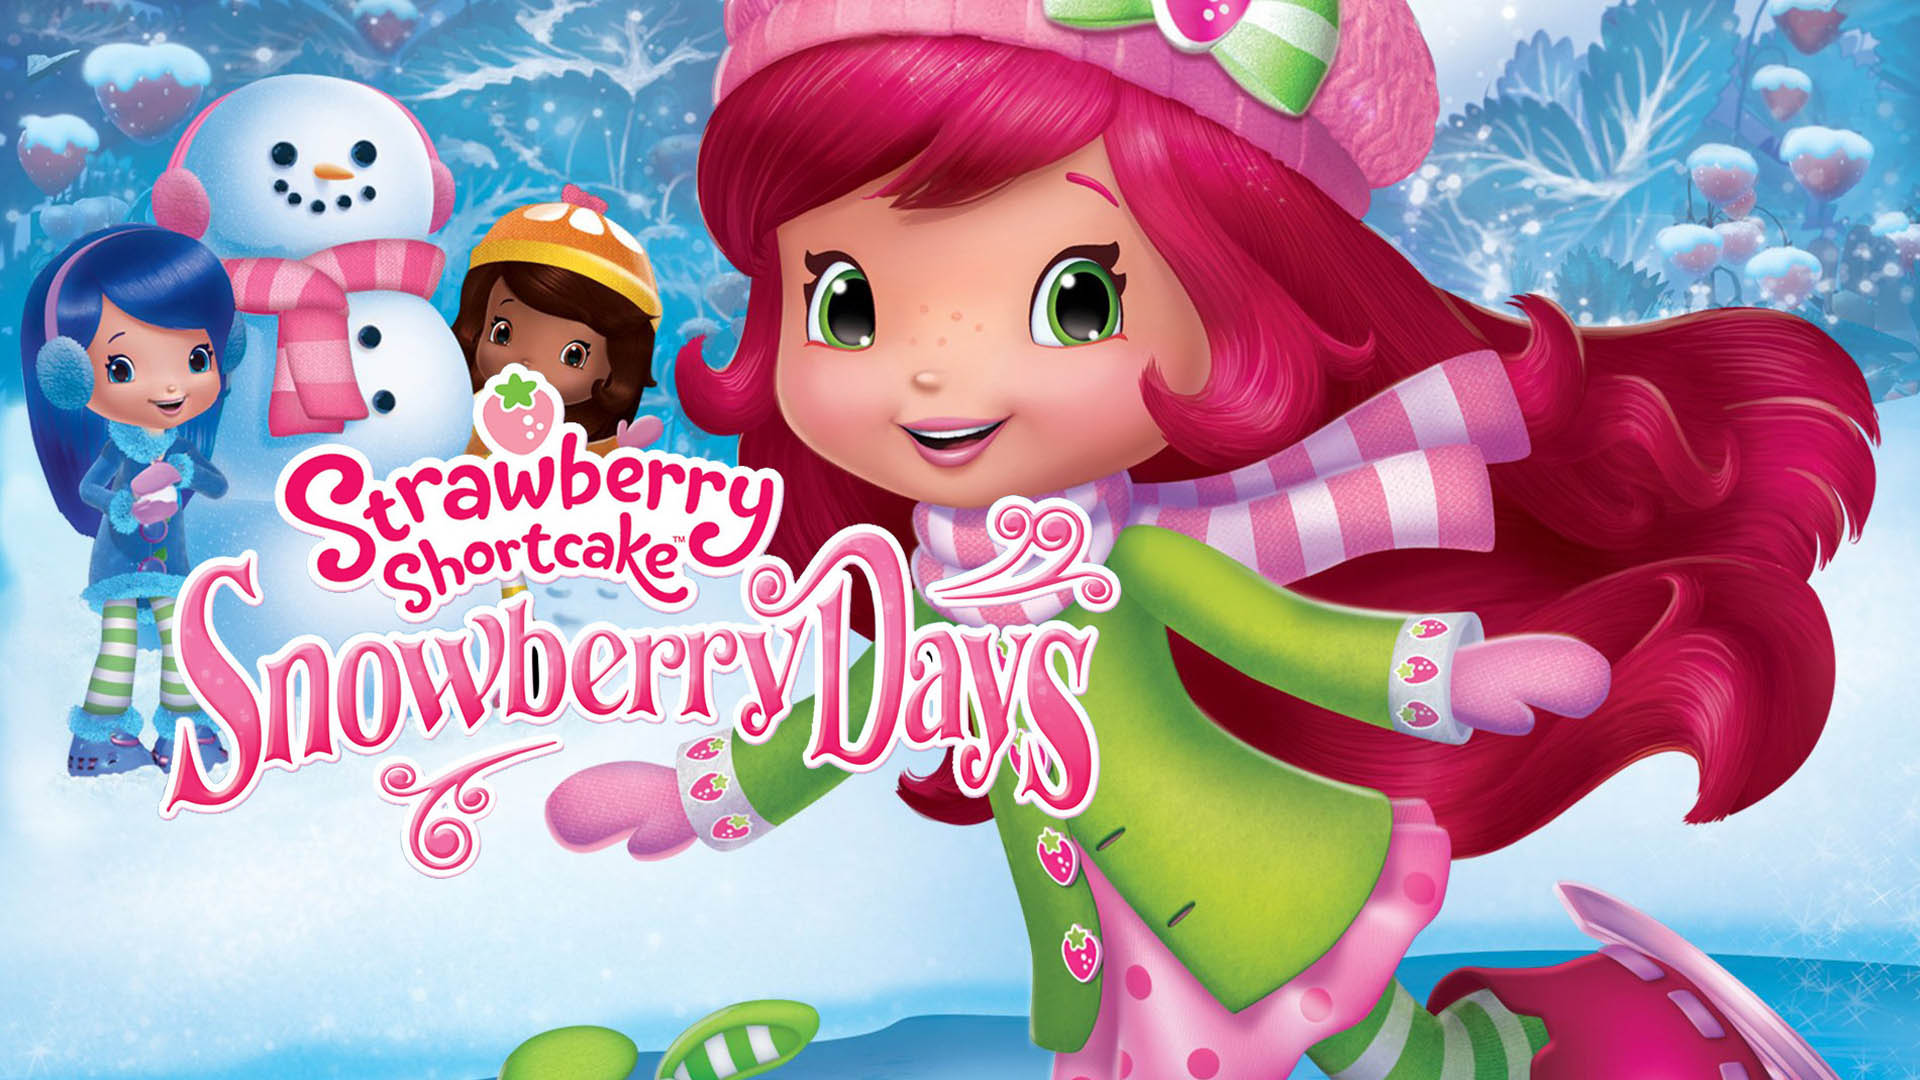 Strawberry Shortcake: Snowberry Days